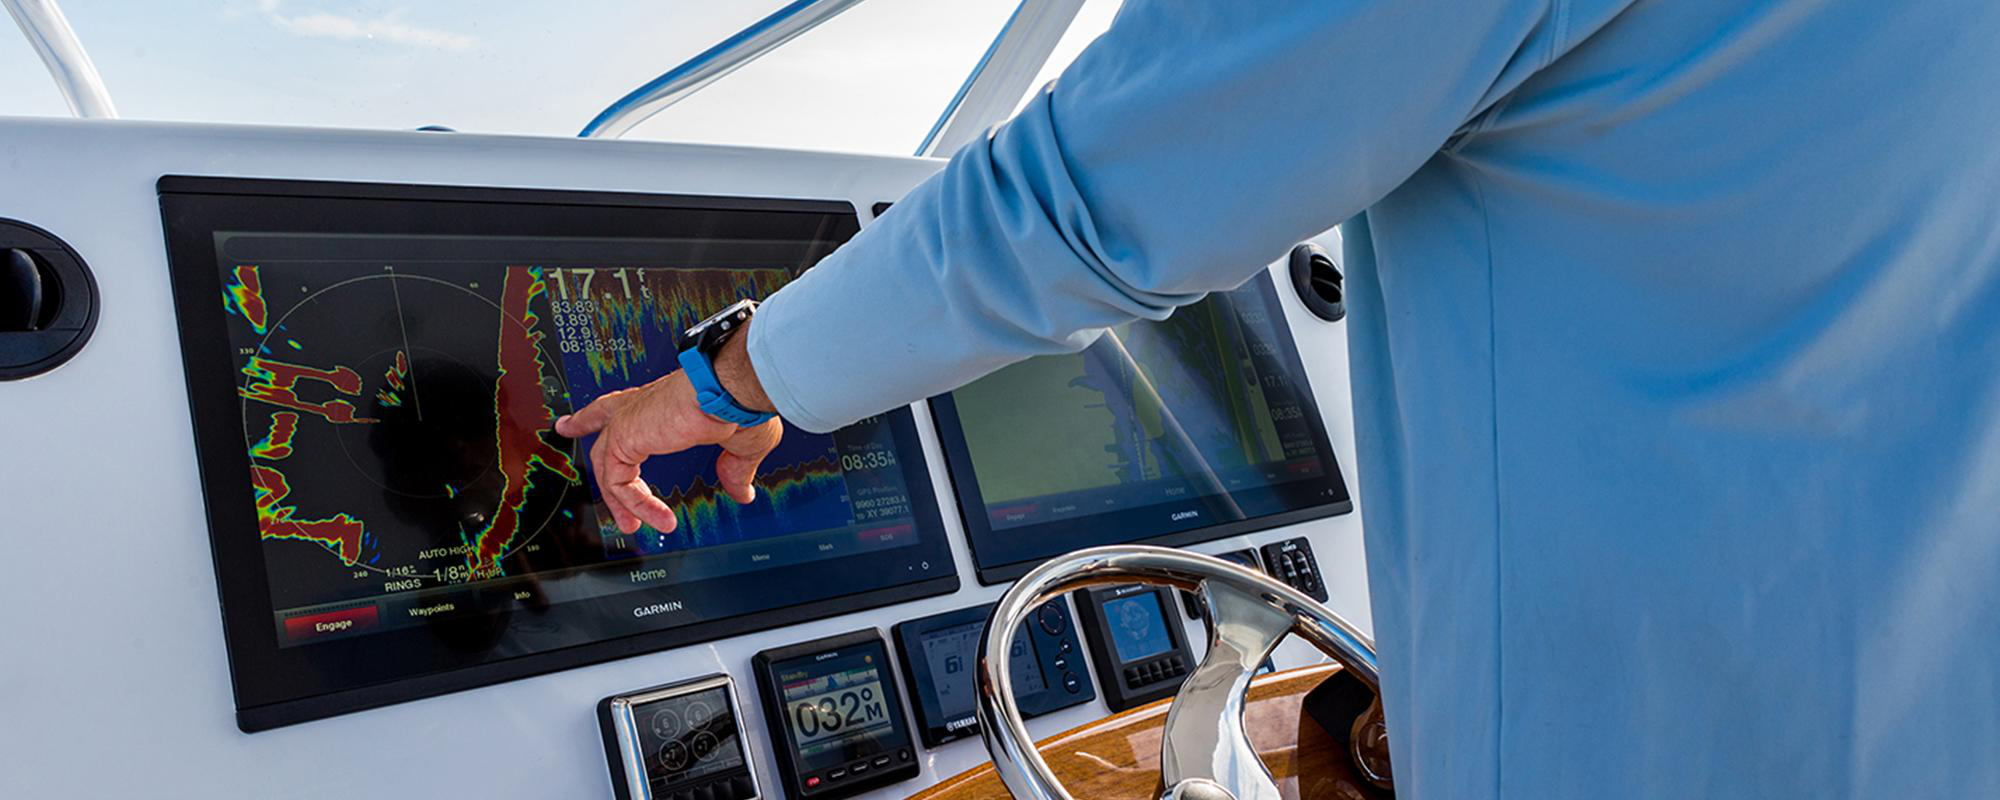 5 Marine Electronics Products That Must Be In Your Checklist - Live